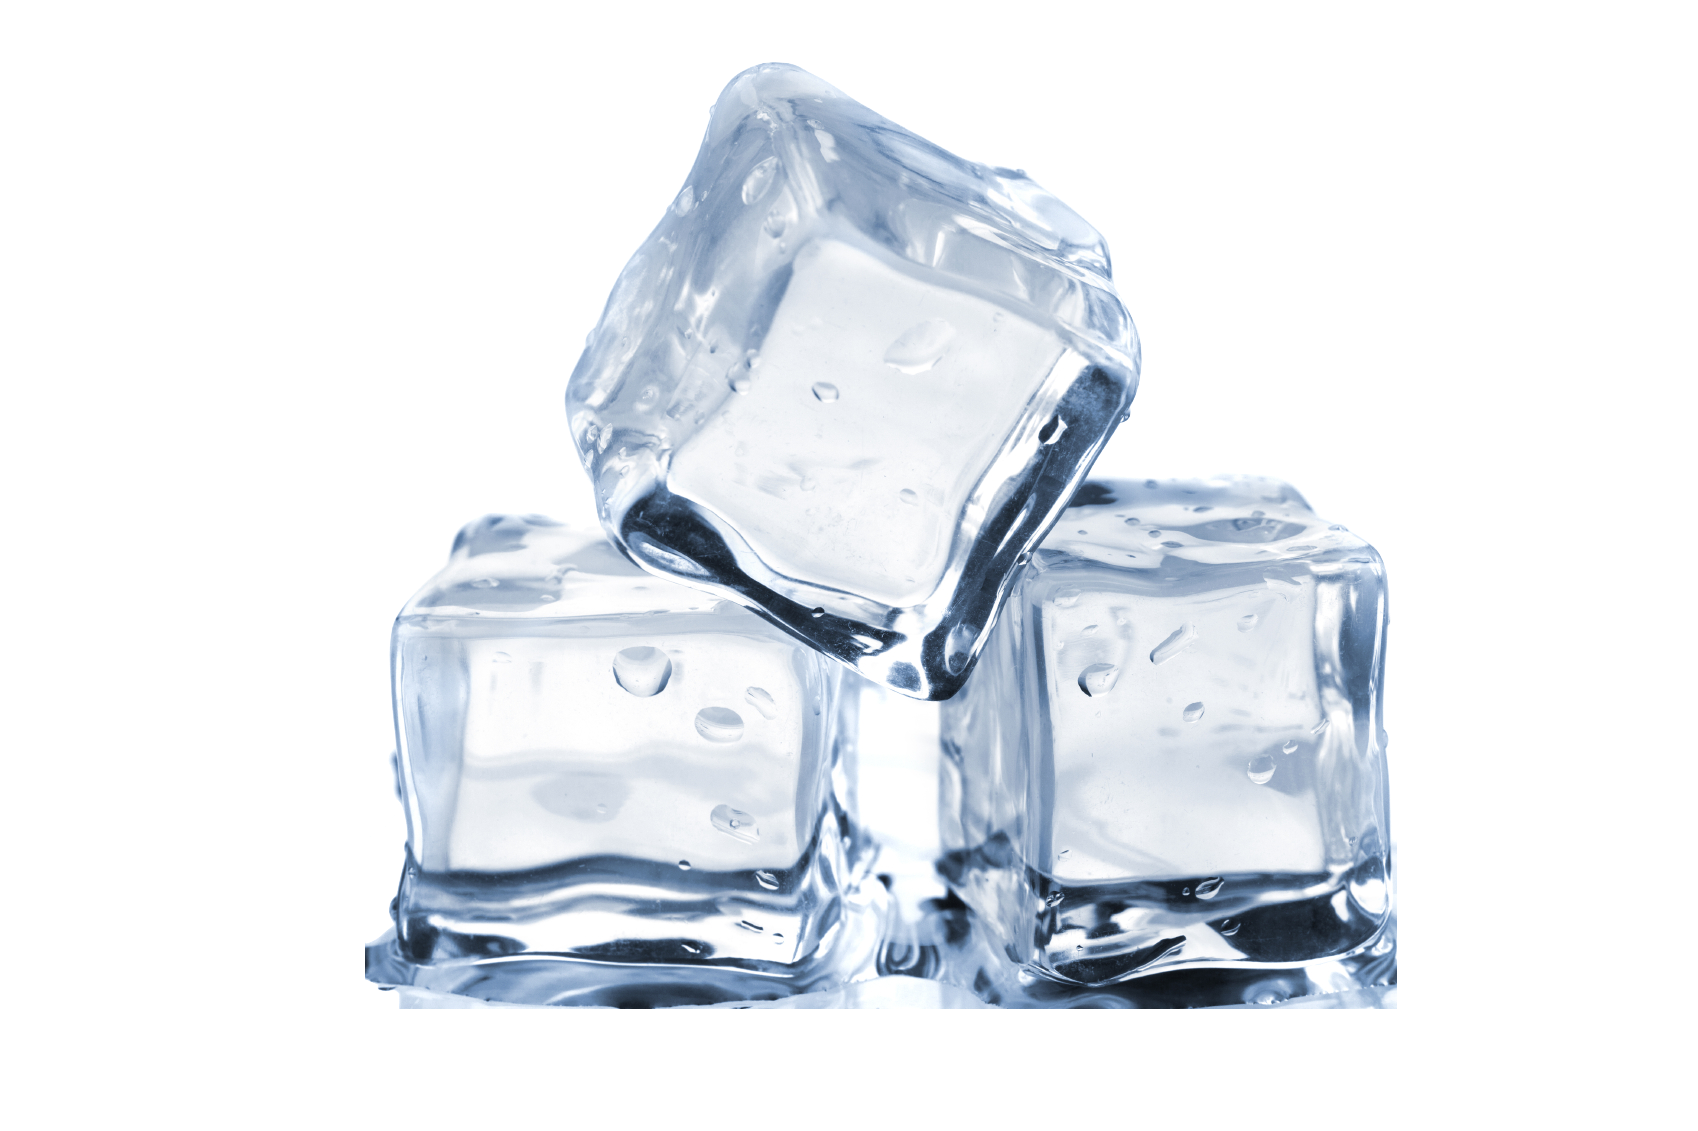 Water clipart cold water. Ice png image purepng